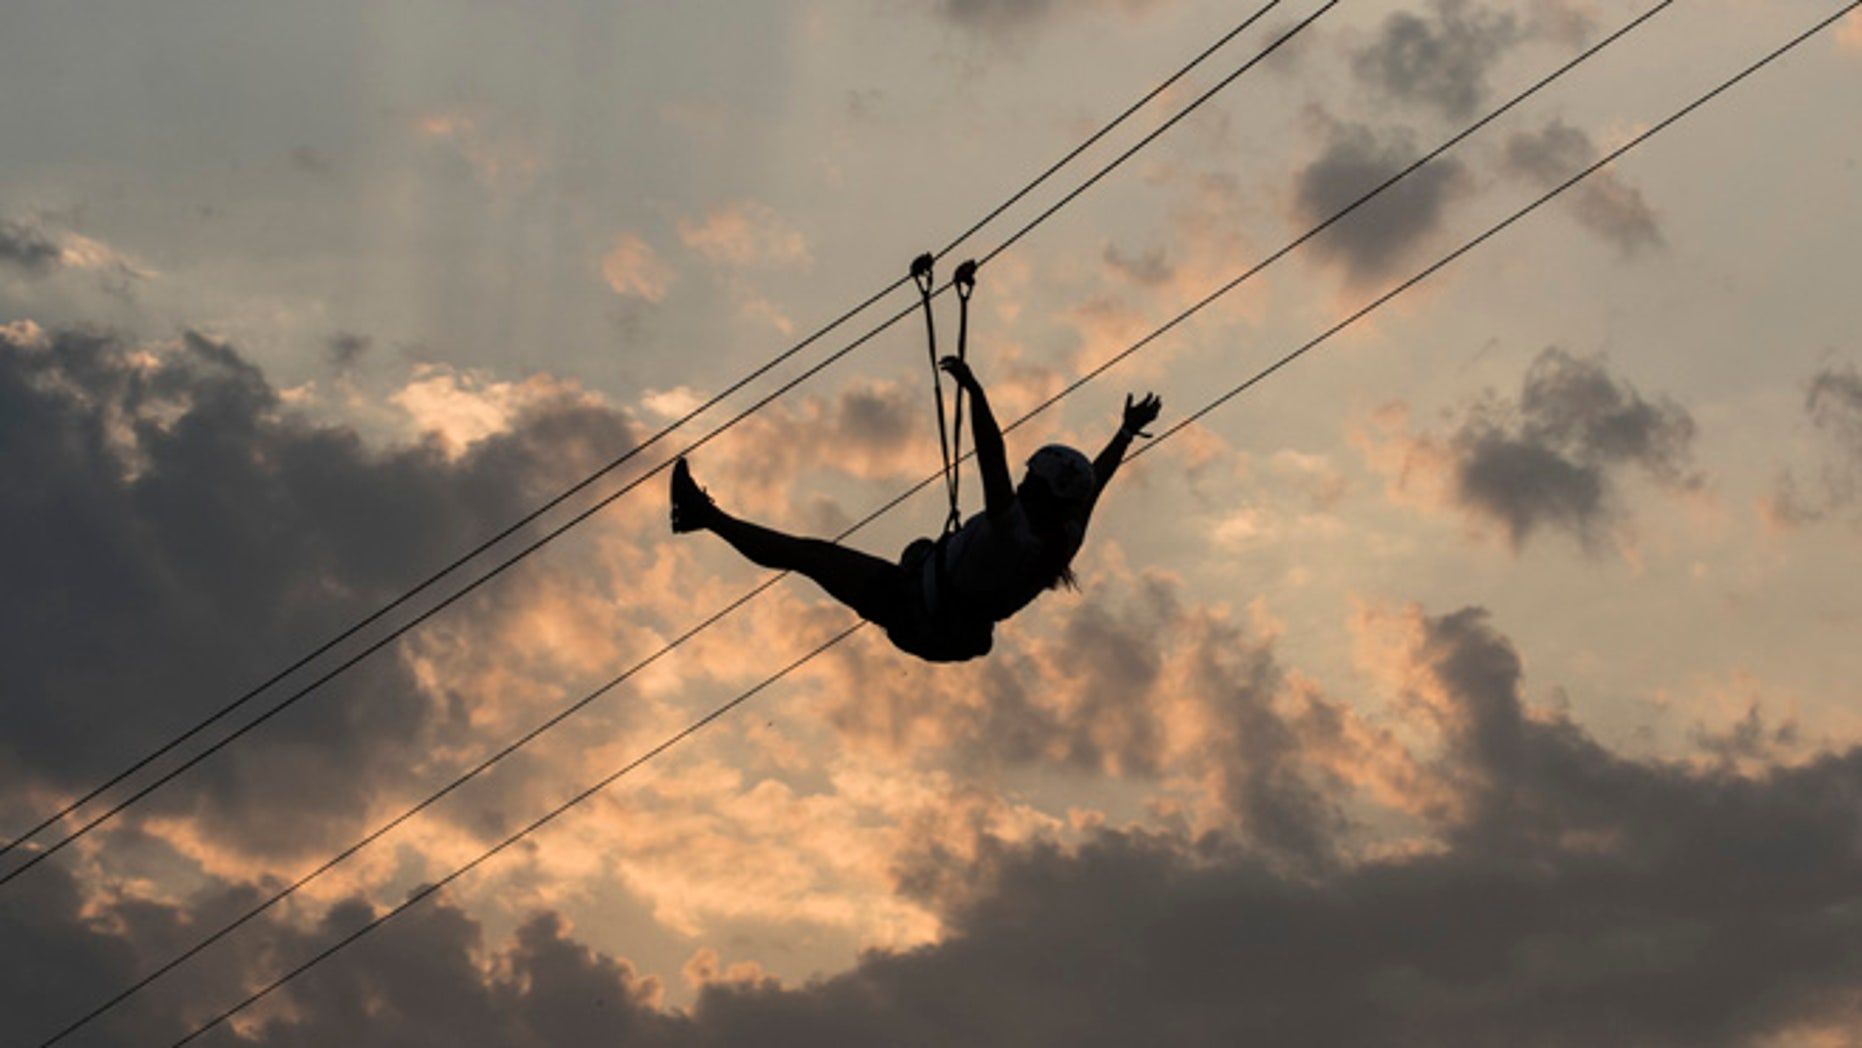 RIO DE JANEIRO, BRAZIL - SEPTEMBER 25: General atmosphere. Fans enjoying the zip-line at day 05 of 2015 Rock in Rio on September 25, 2015 in Rio de Janeiro, Brazil. (Photo by Raphael Dias/Getty Images)